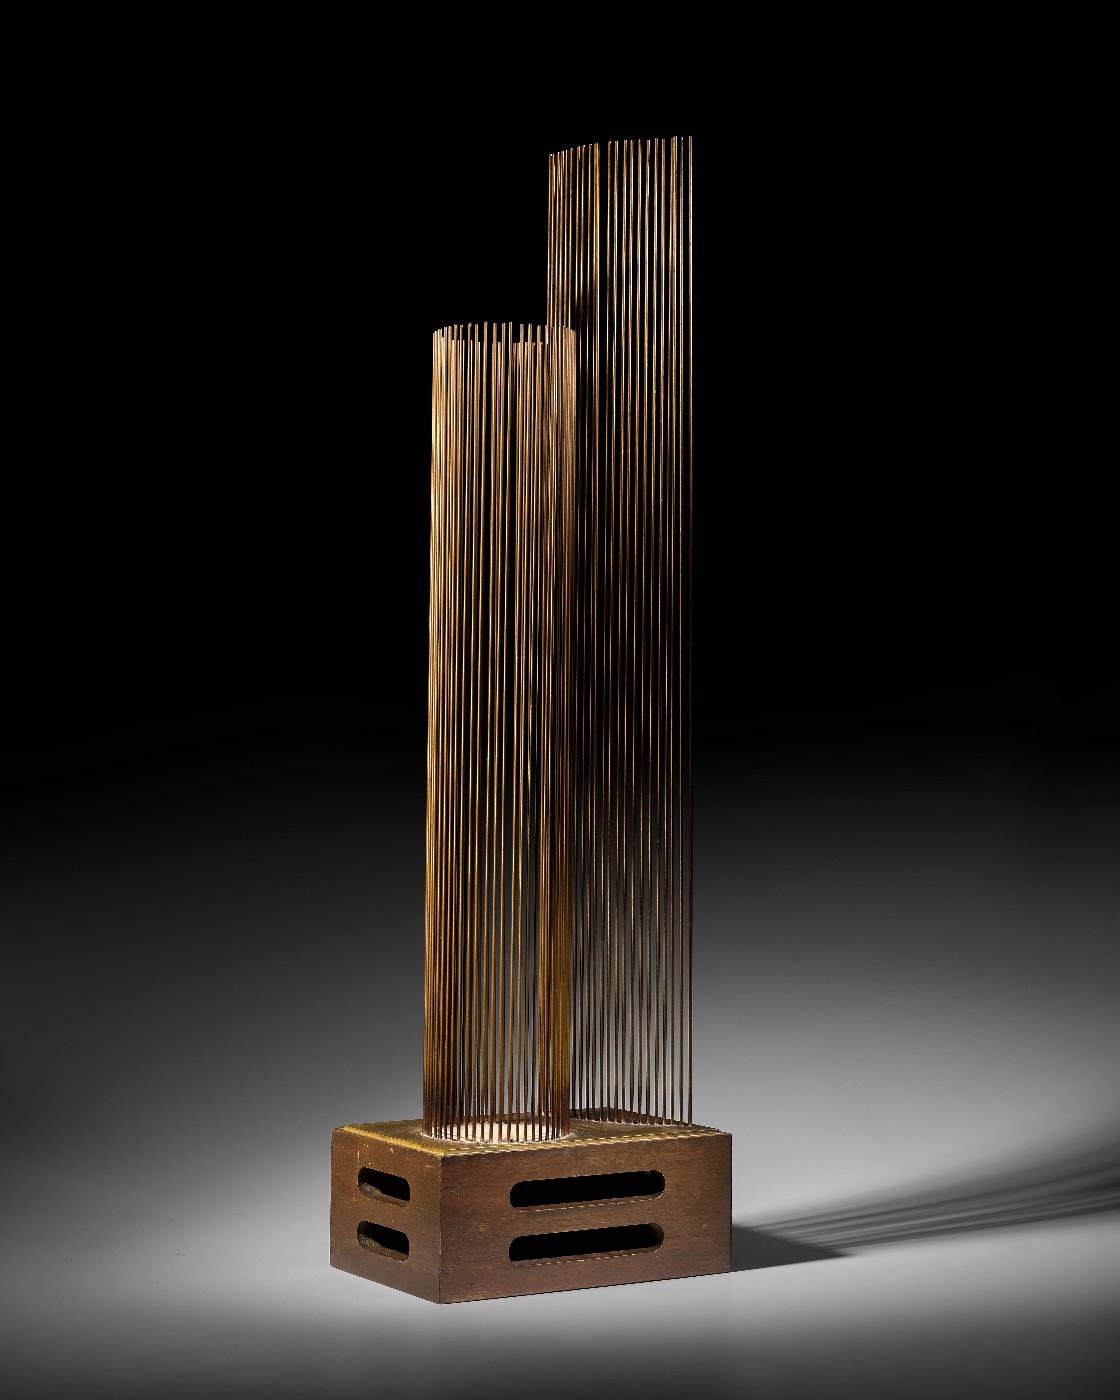 Harry Bertoia (1915-1978), (Untitled) Sonambient, circa 1970